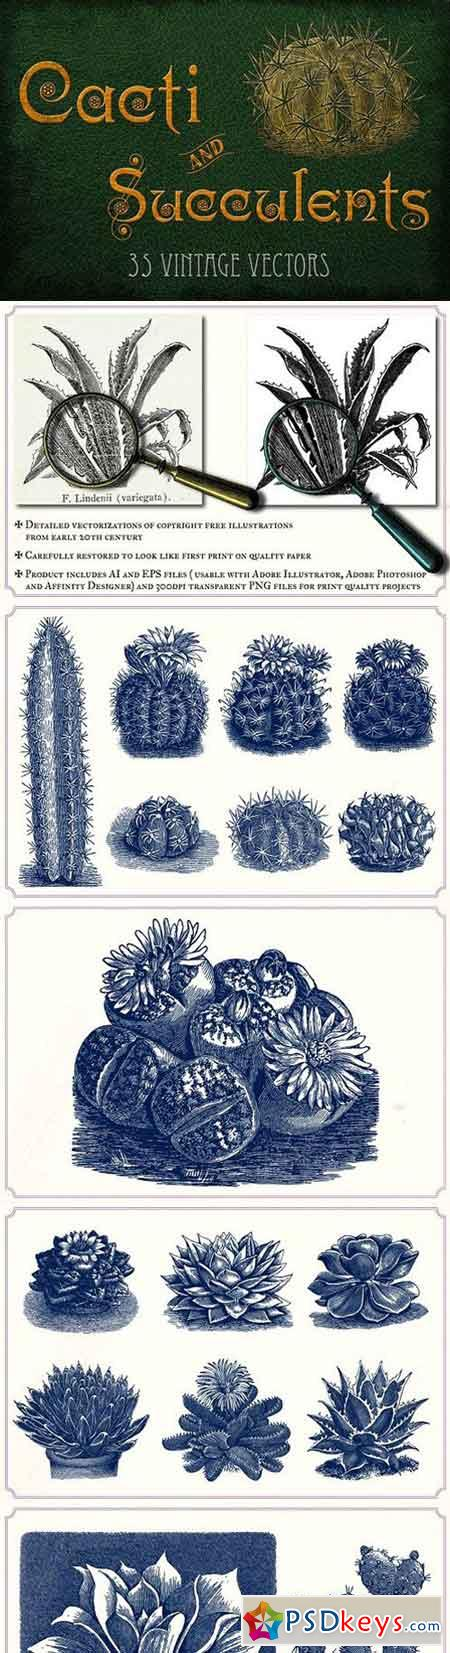 Vintage Cacti and Succulents 1288797